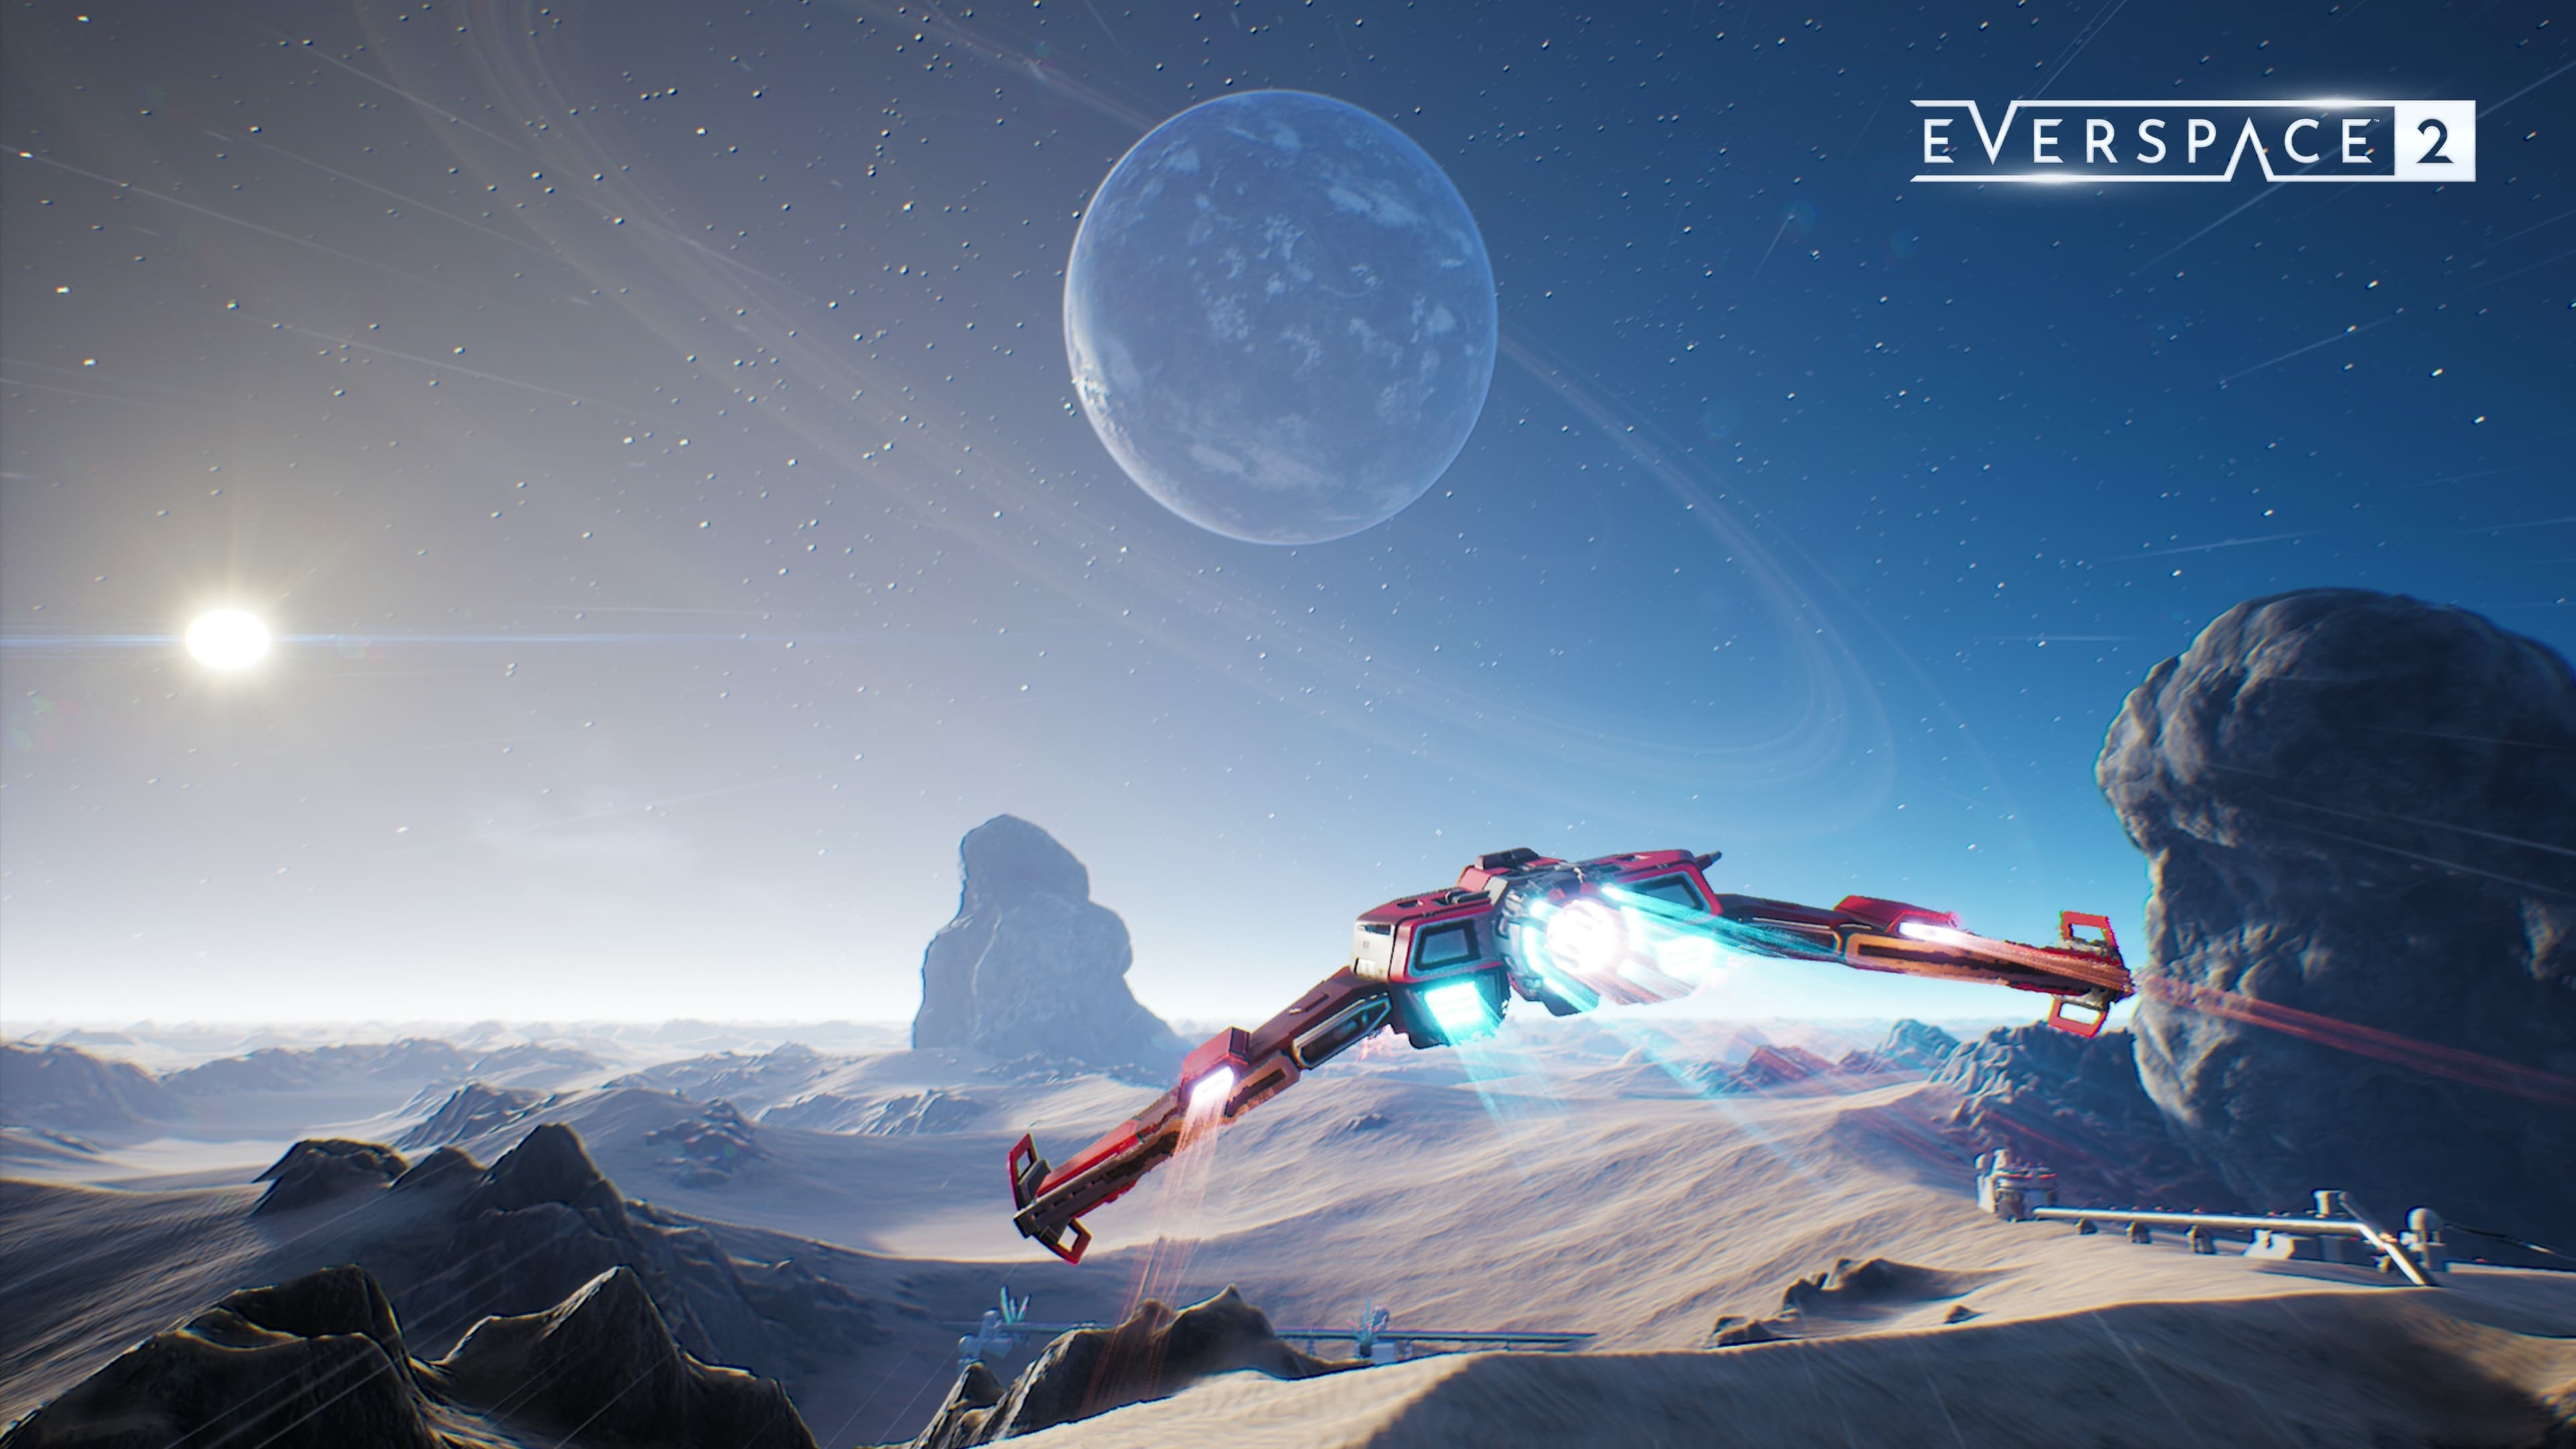 Video Game Everspace 2 3840x2160